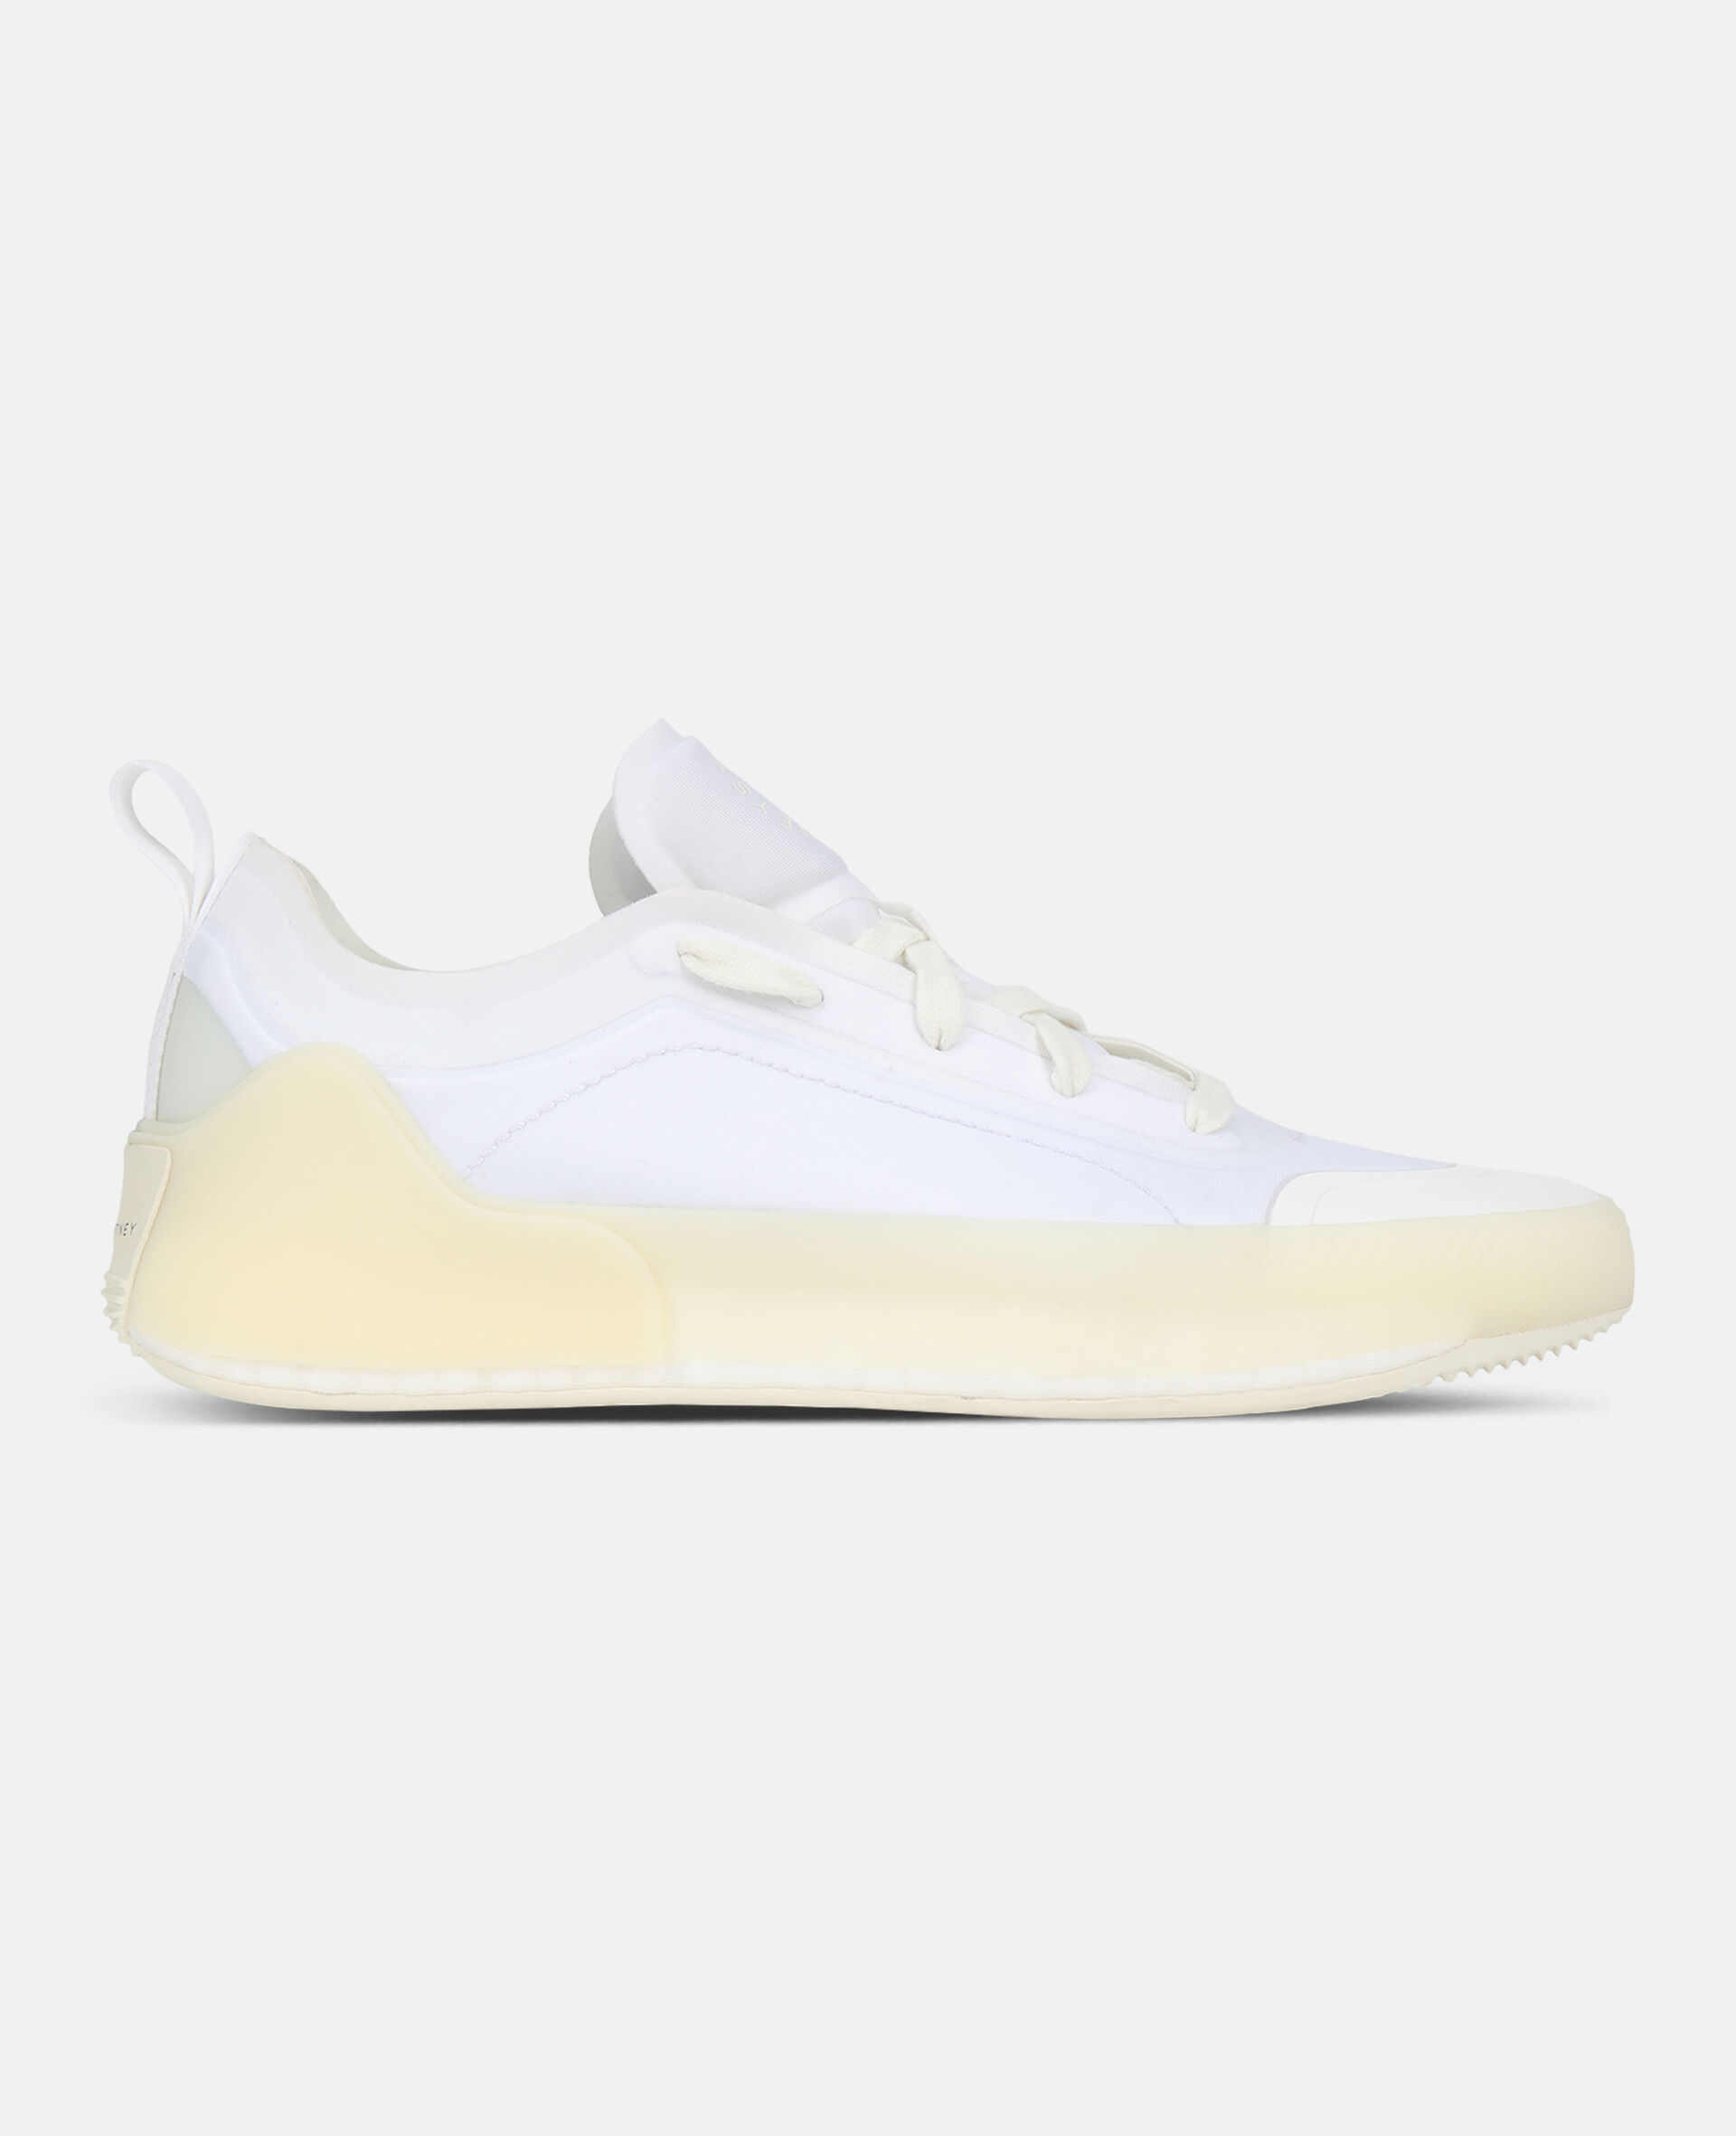 White Boost Treino Sneakers-White-large image number 2